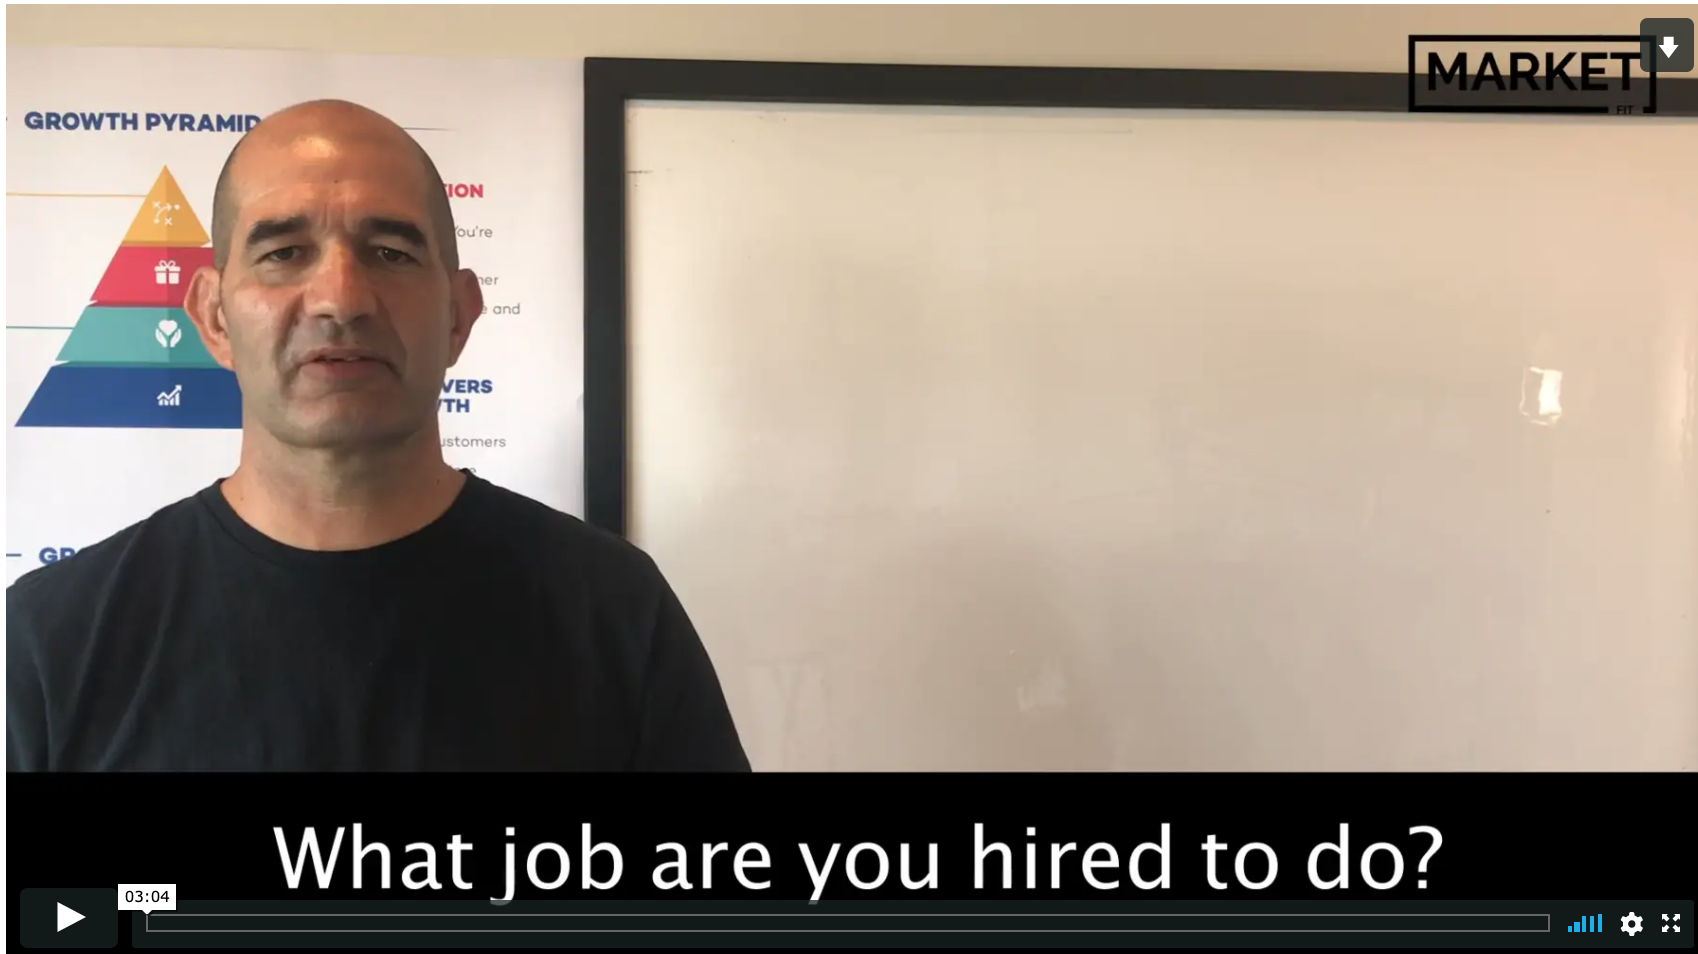 What job are you hired to do?